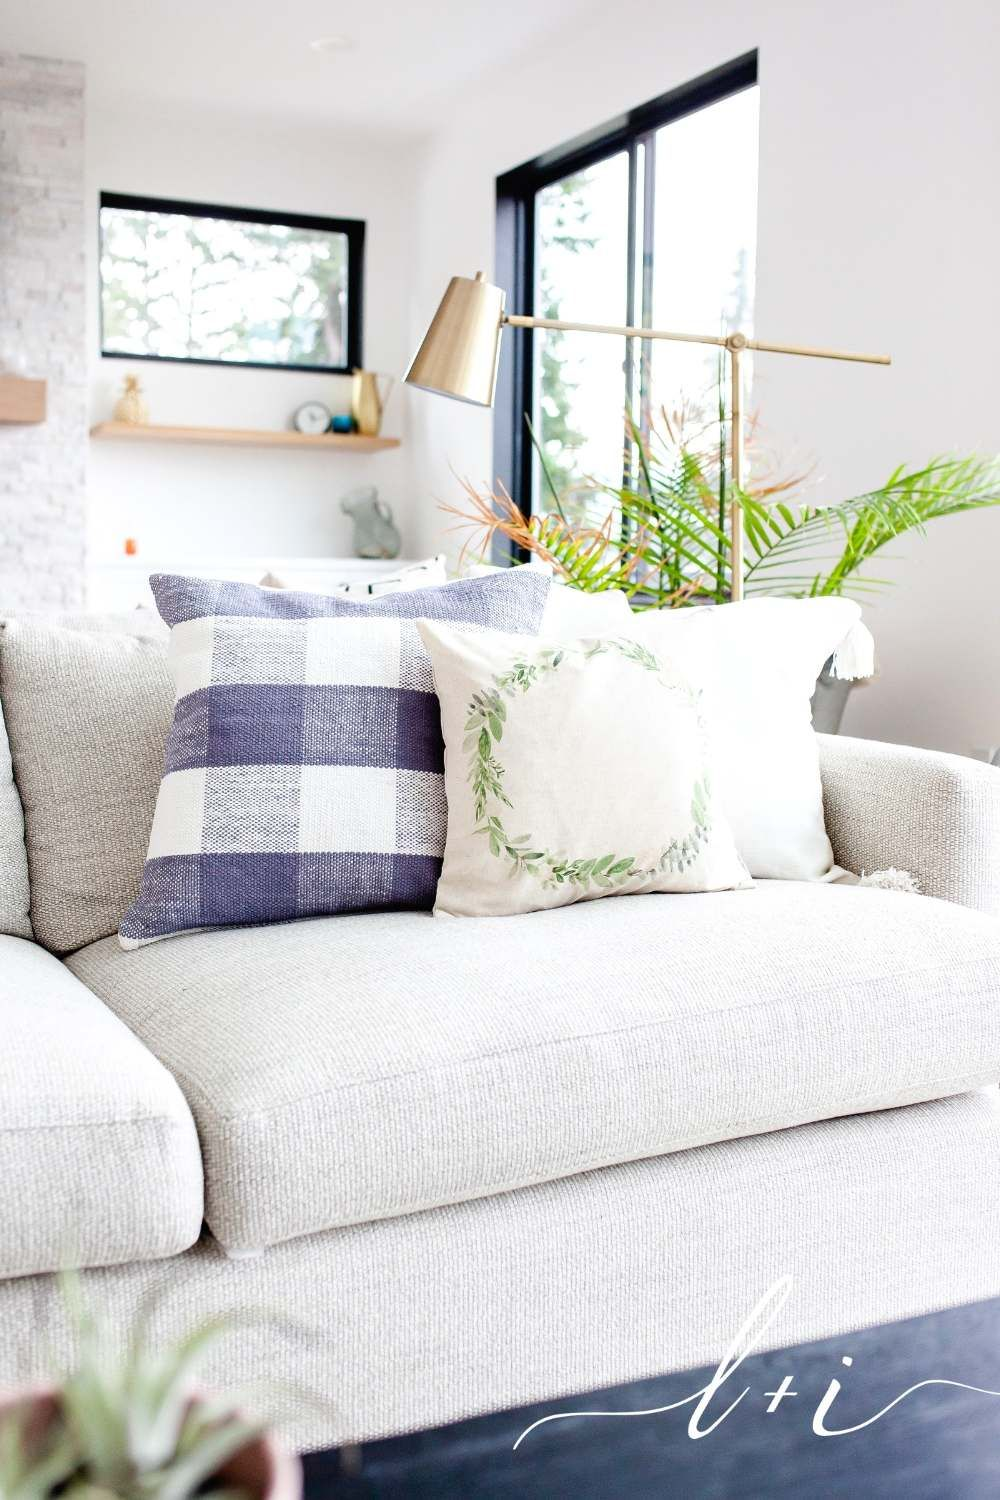 Handcrafted pillows are the perfect touch to make your